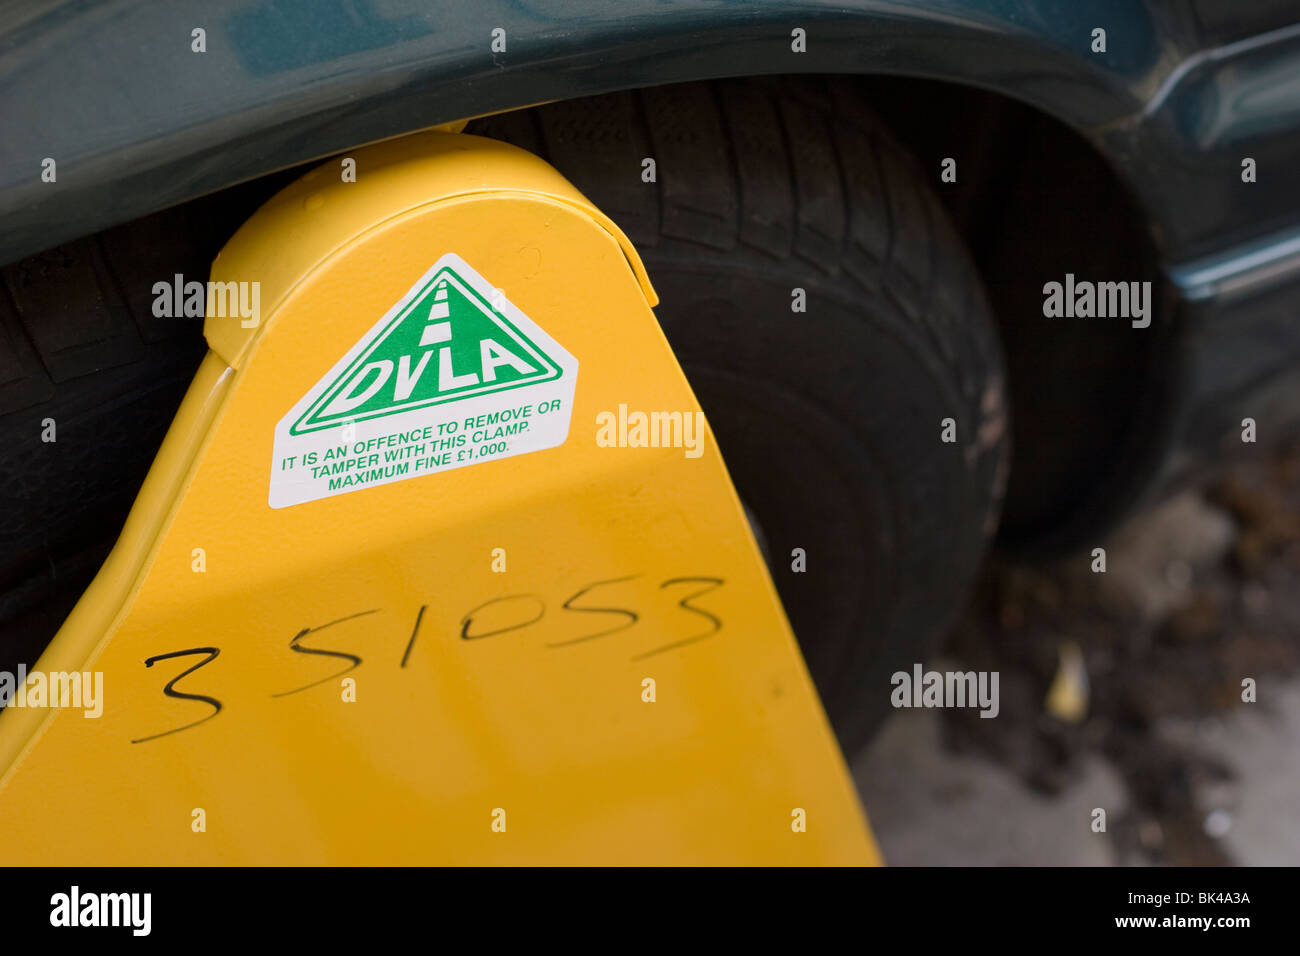 A DVLA clamp on a car wheel because the car had not been taxed. - Stock Image